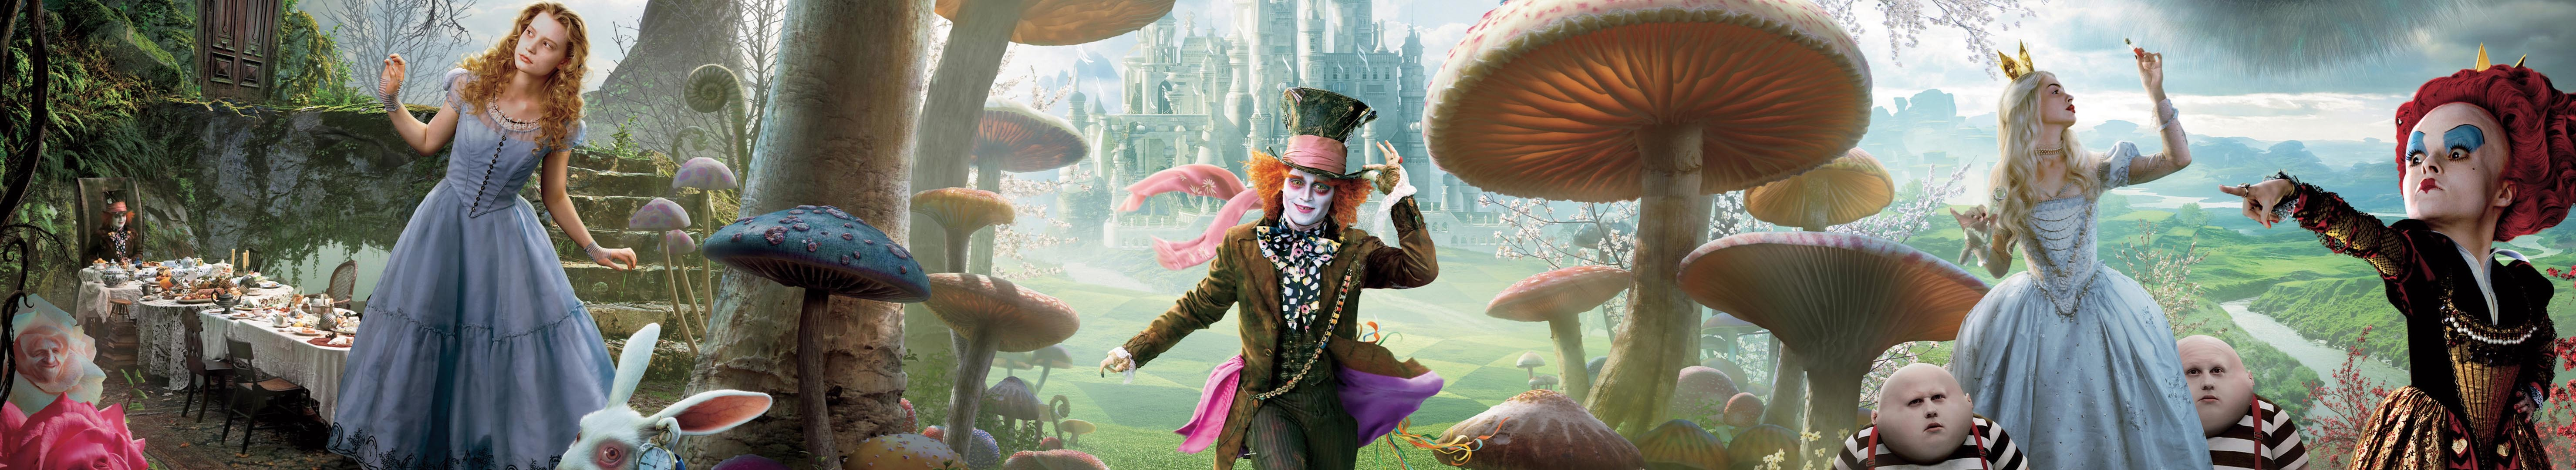 depp Celebrity Alice in HD Wallpaper